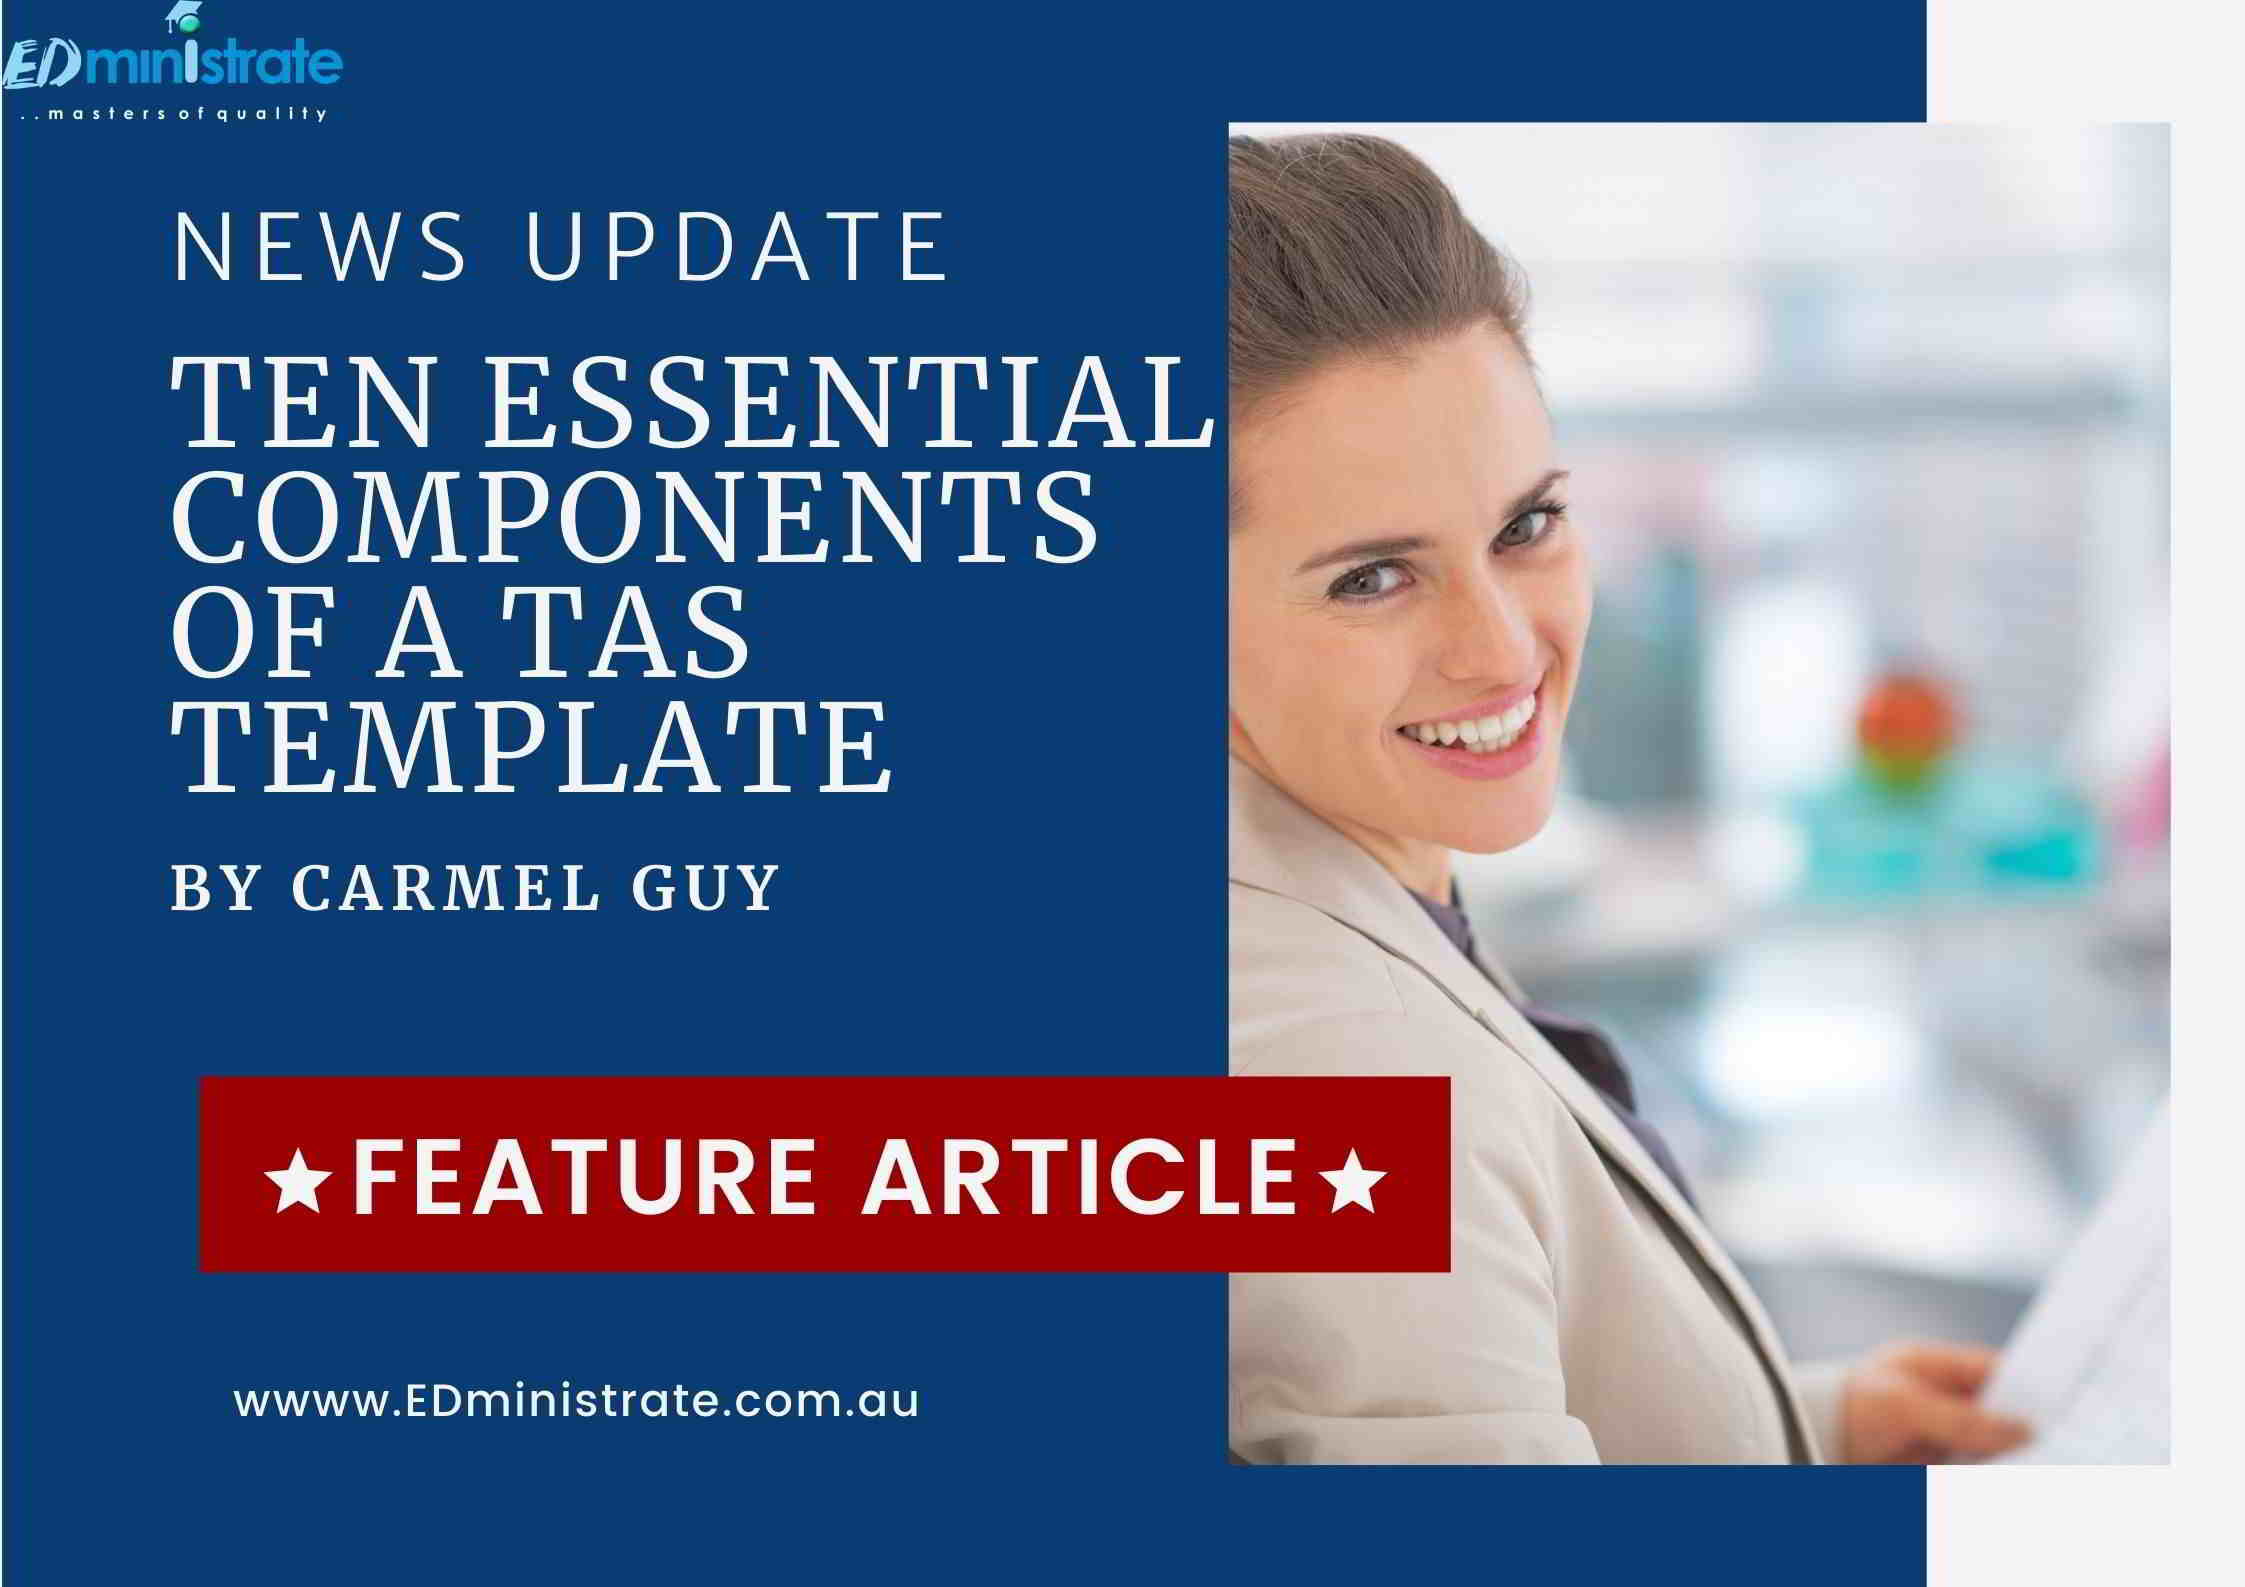 Ten essential components of a TAS template